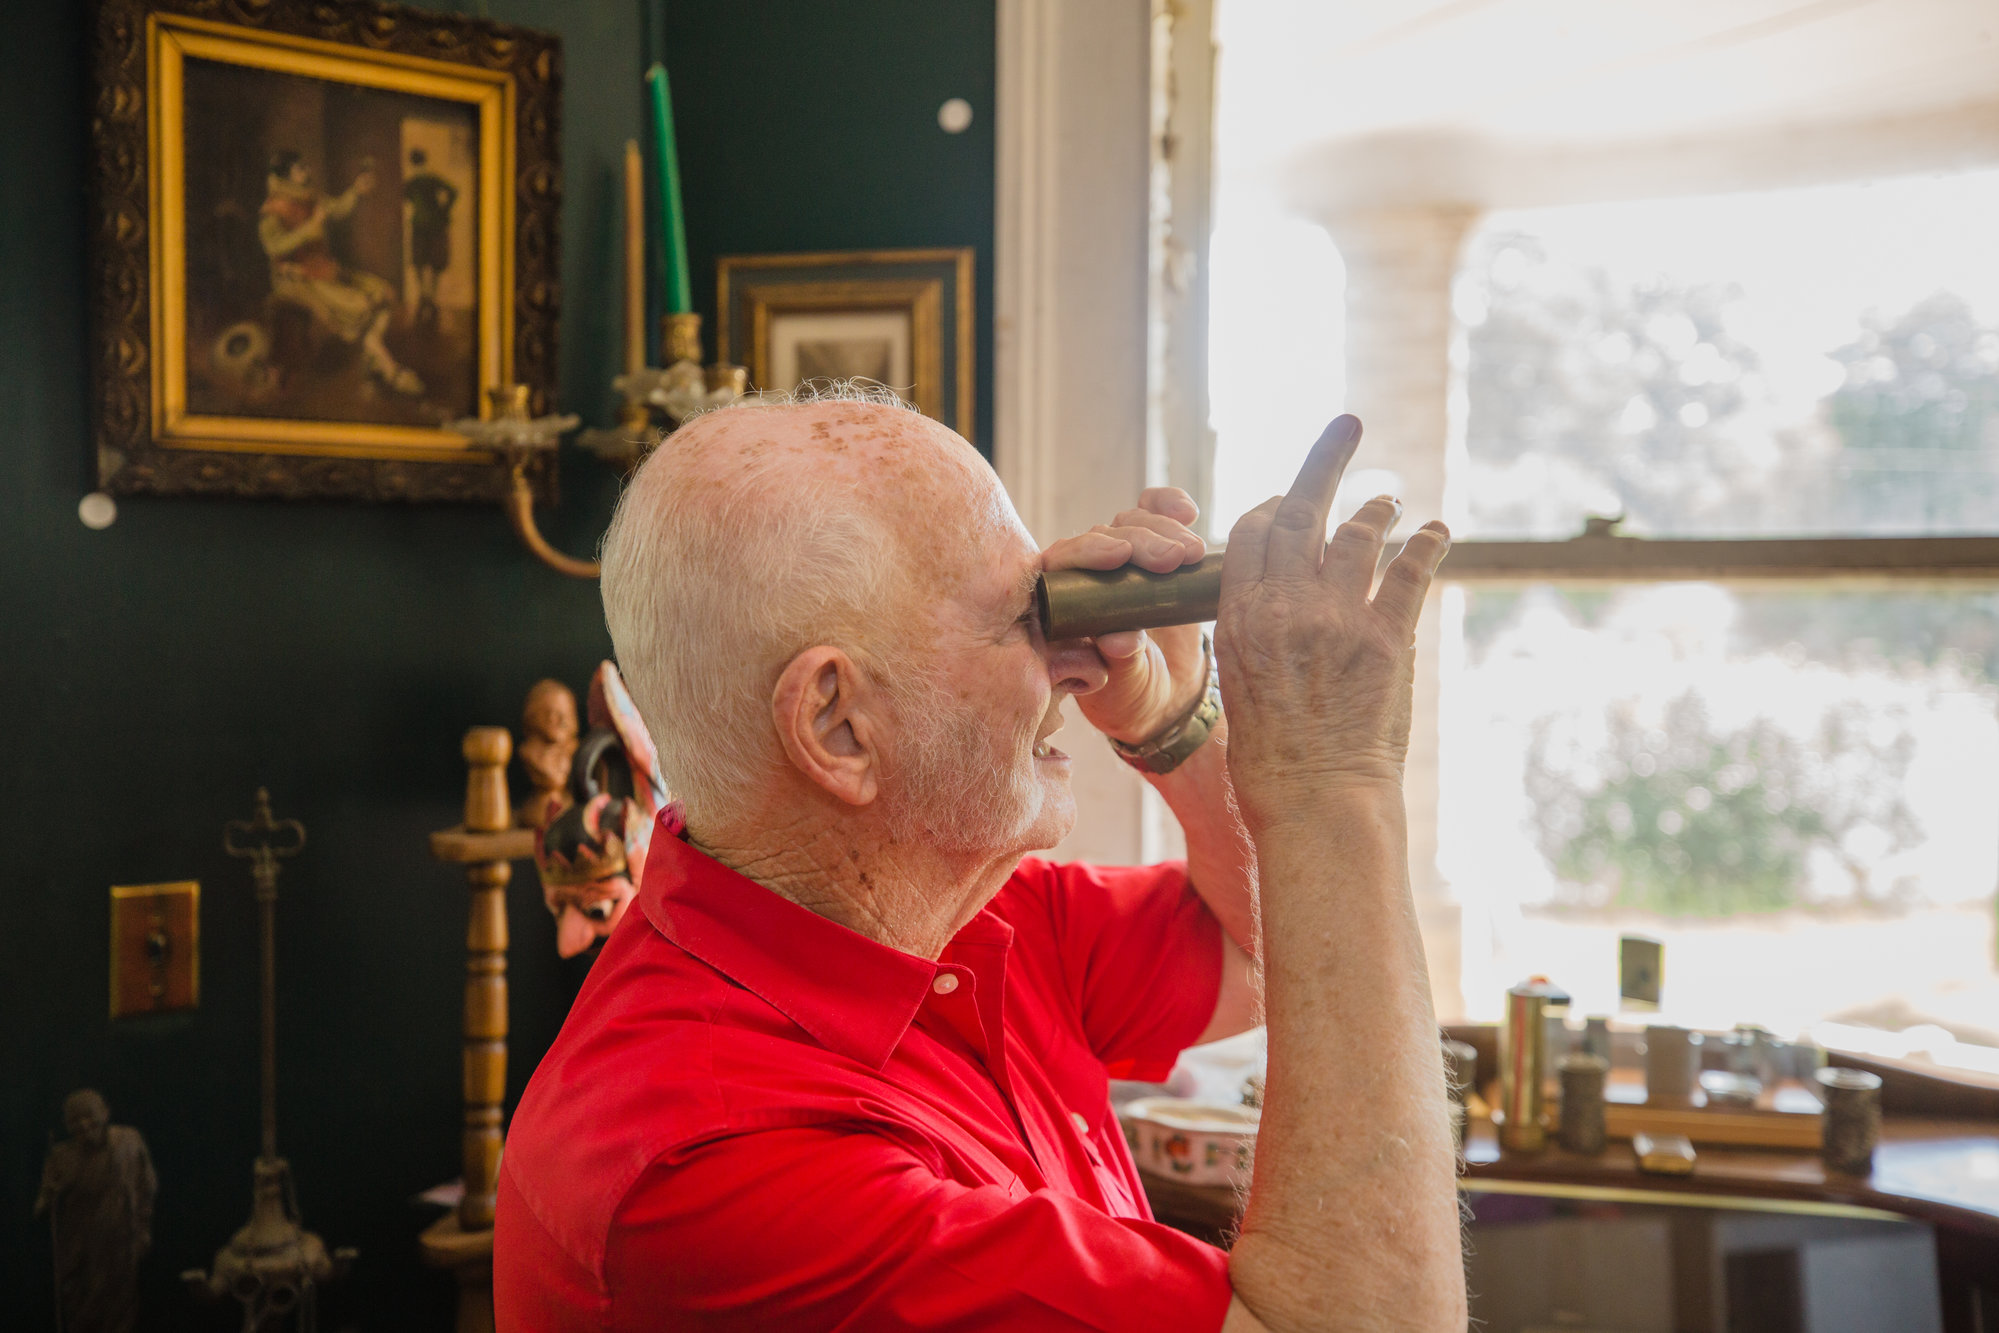 Don Cann looks through a kaleidoscope in his museum.